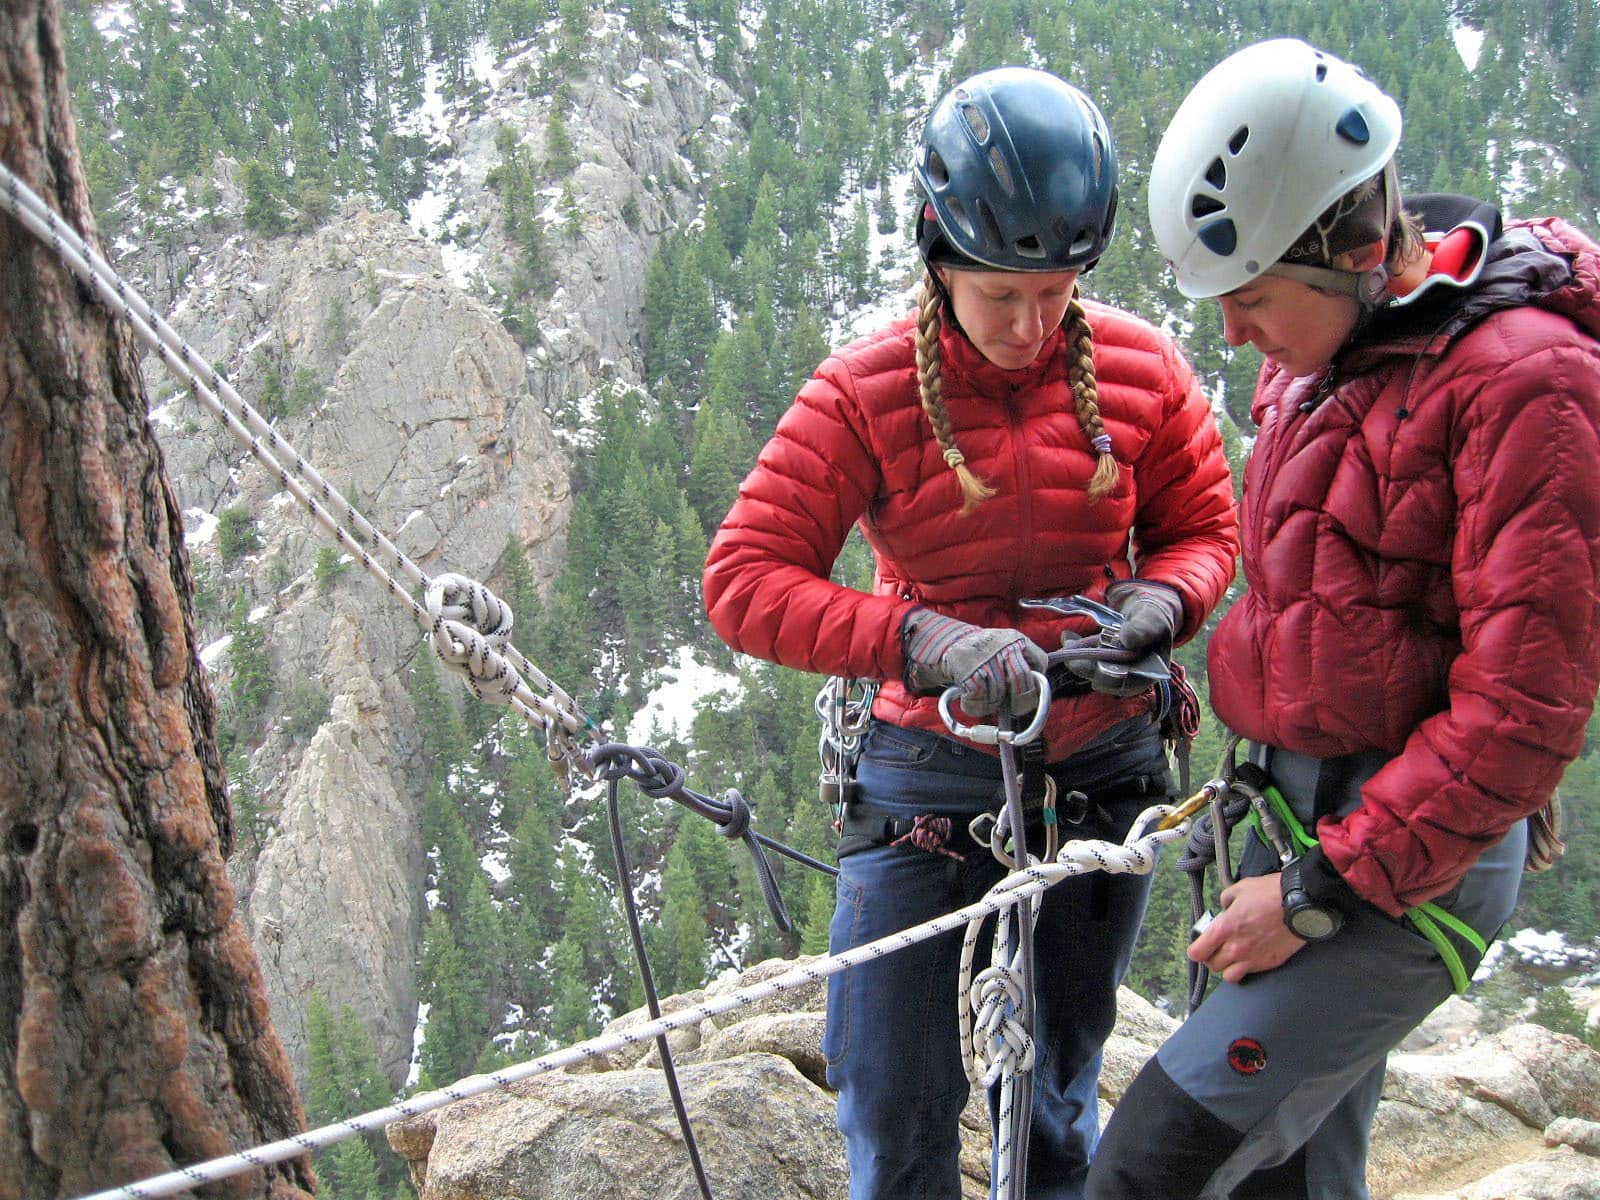 SPI Candidates learn rock climbing rescue techniques on an AMGA Single Pitch Instructor Course in Denver, Colorado